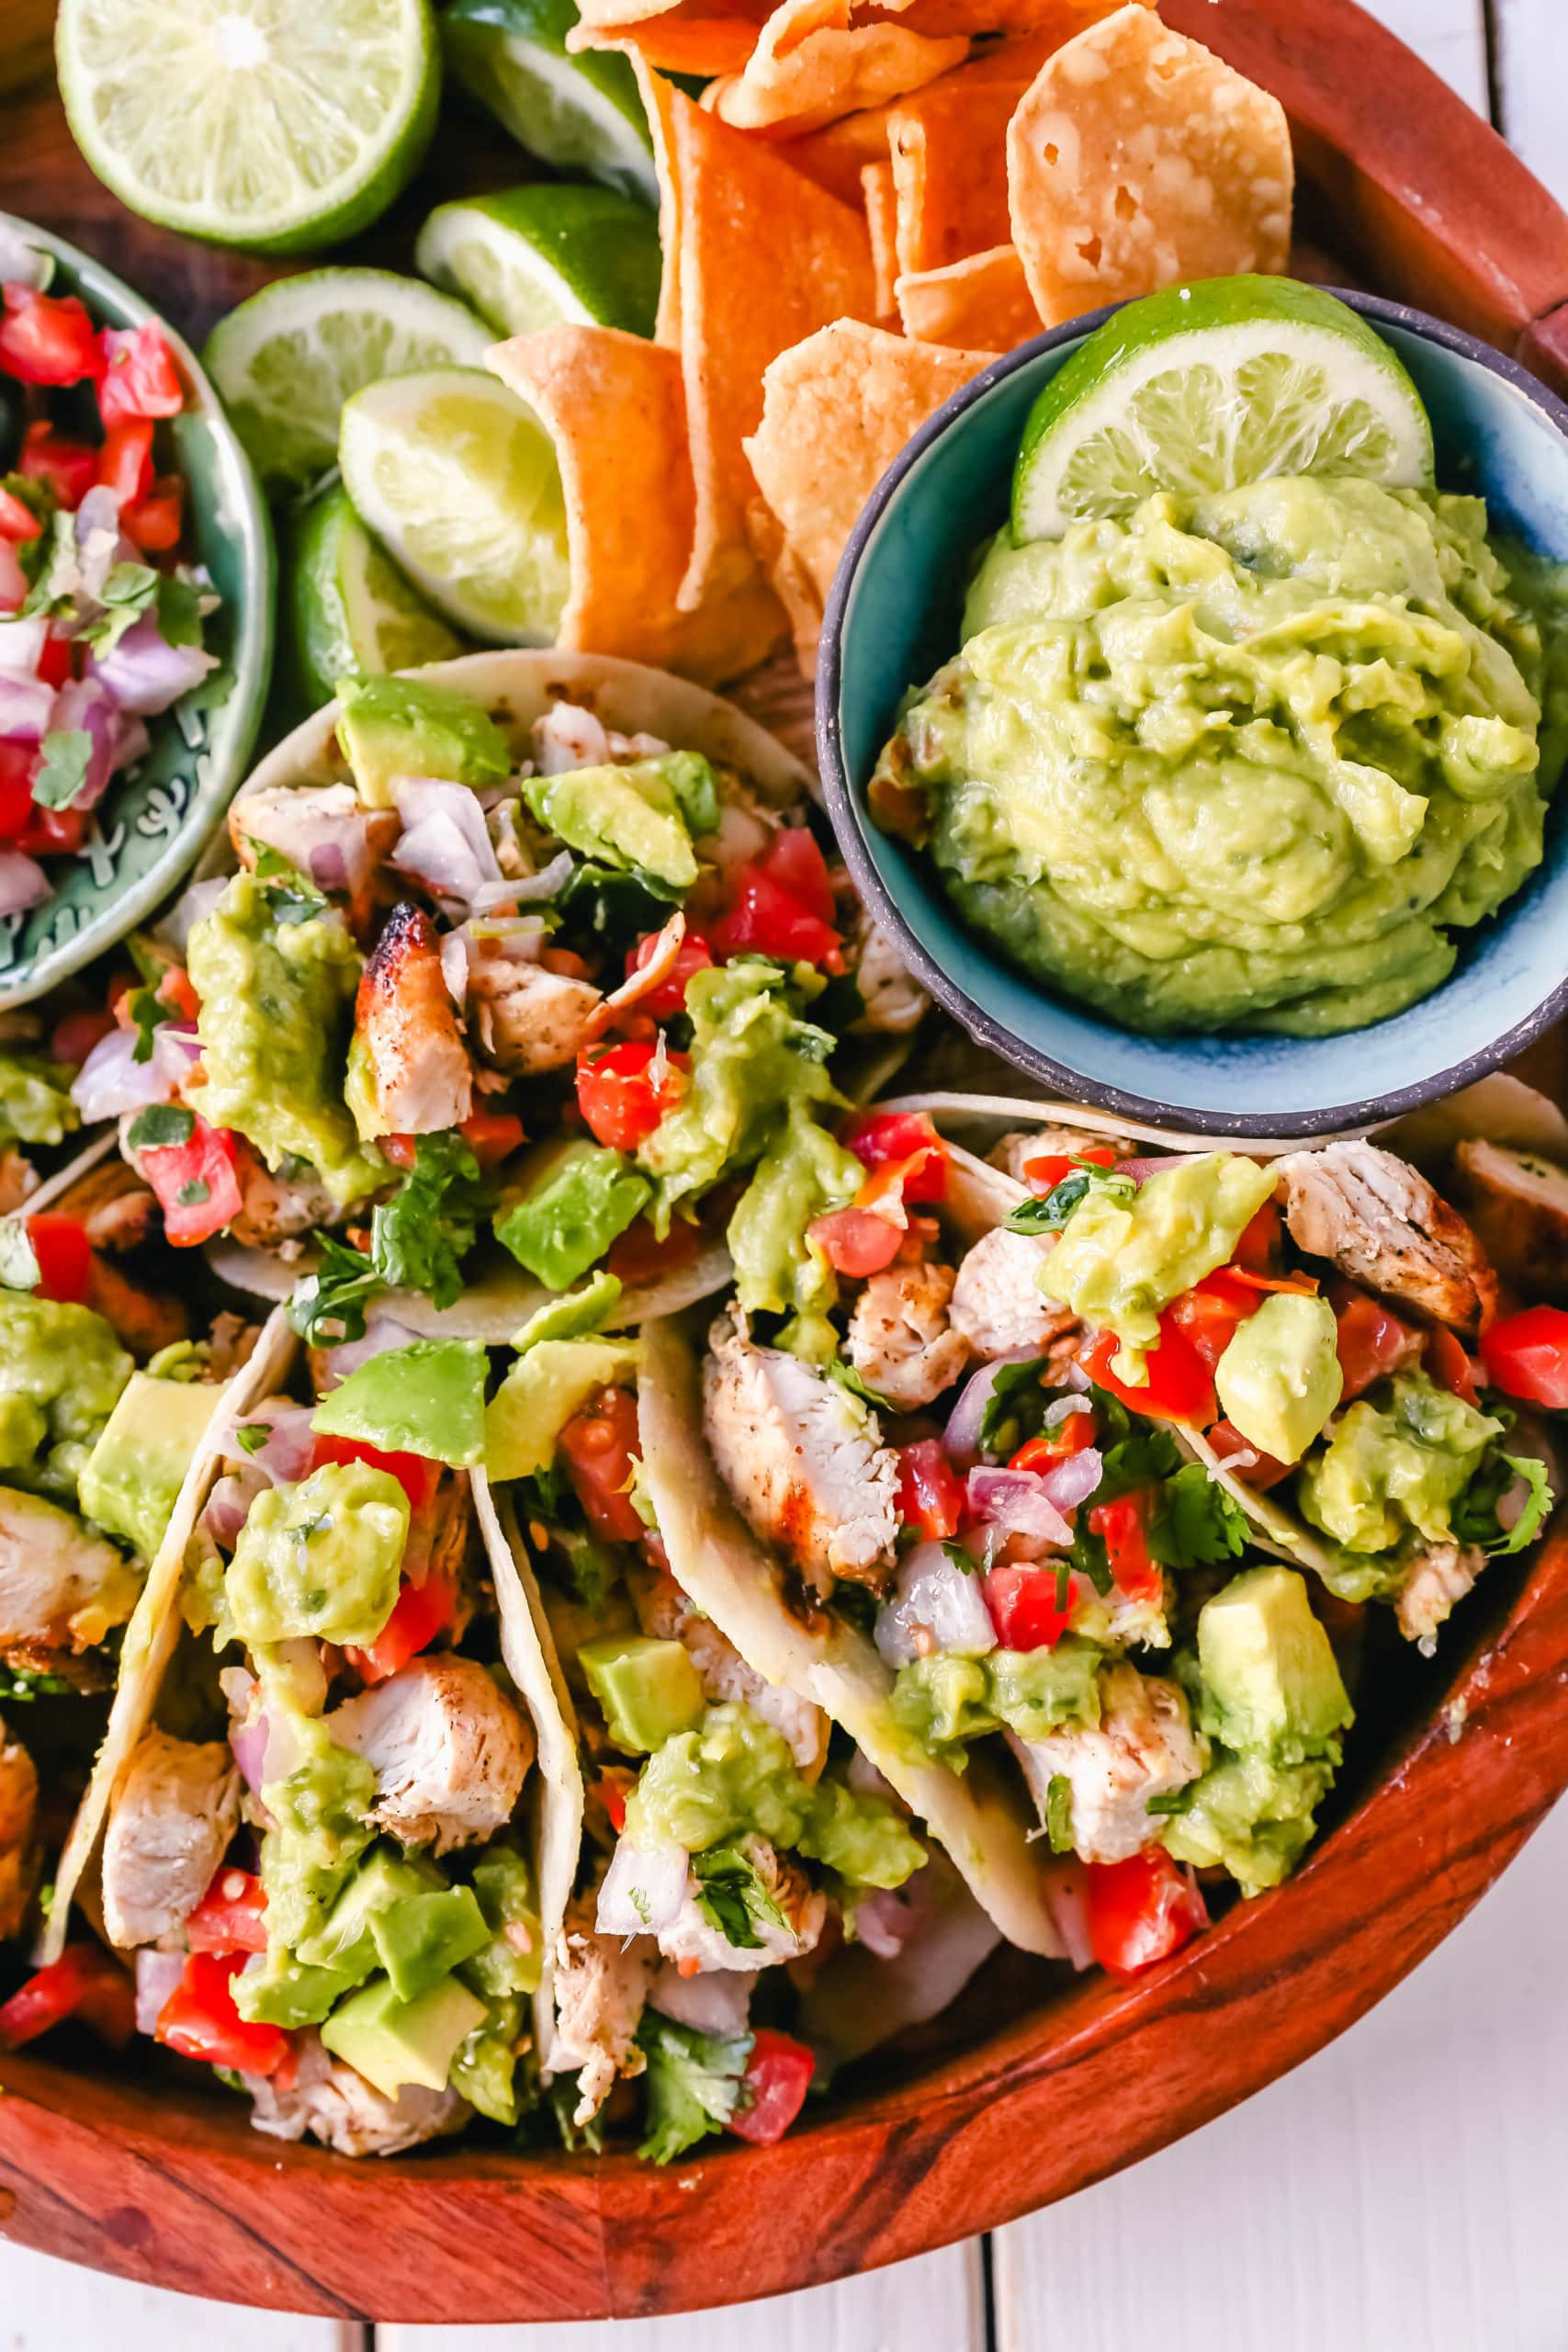 Grilled Chicken Tacos with Guacamole. Marinated grilled chicken with fresh lime and Mexican spices topped with pico de gallo and fresh guacamole. The best grilled chicken tacos! www.modernhoney.com #tacos #tacotuesday #chickentacos